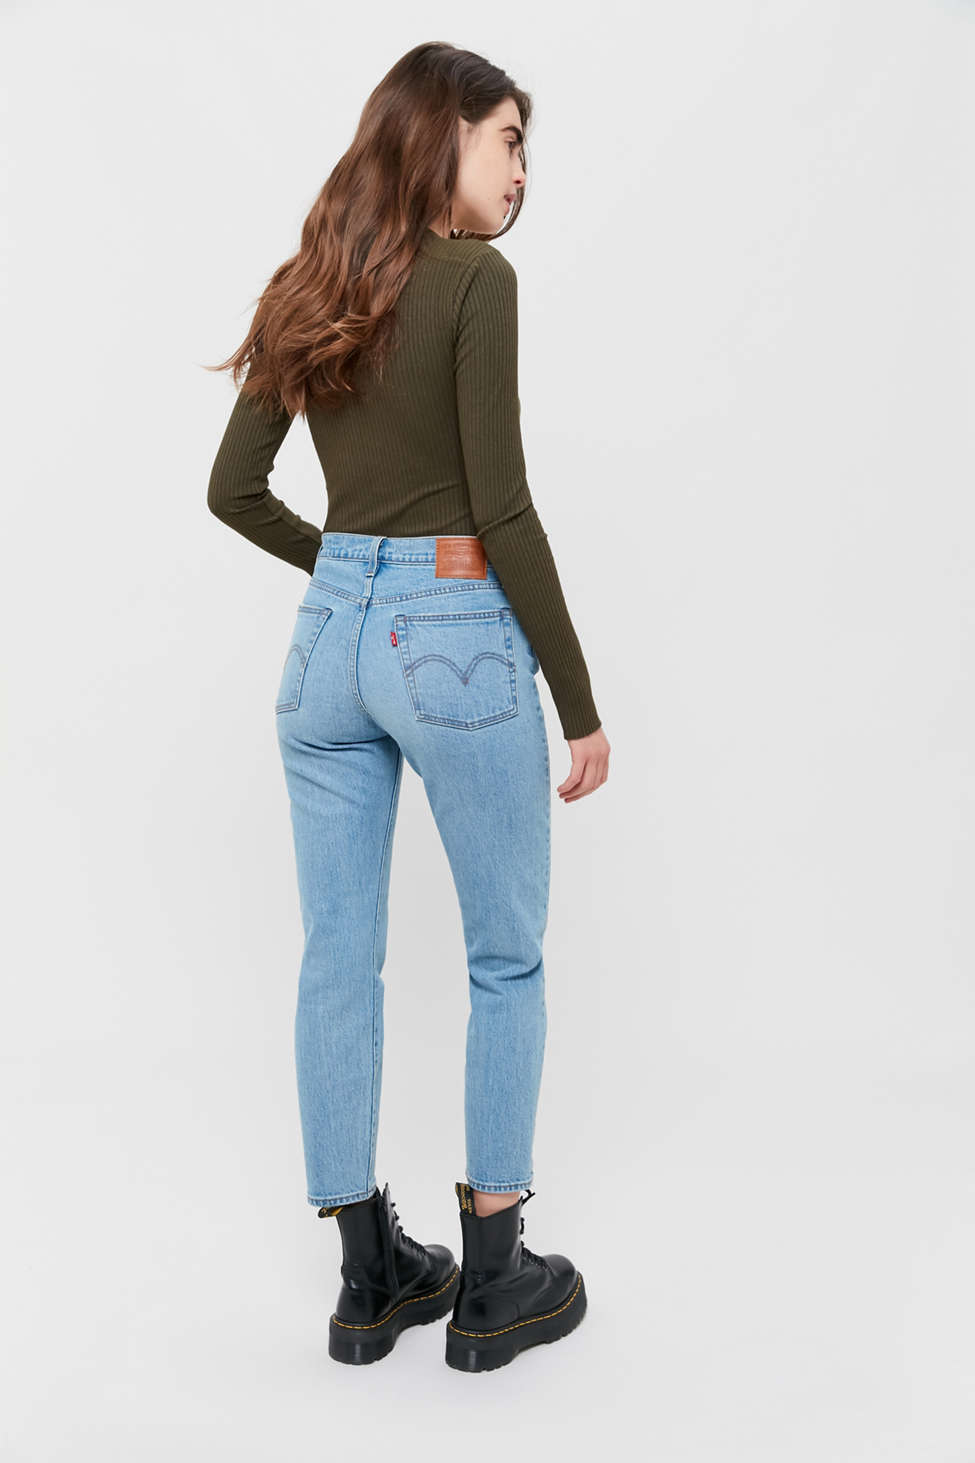 Levi's Wedgie High Rise Jean – Bright Side by Levi's